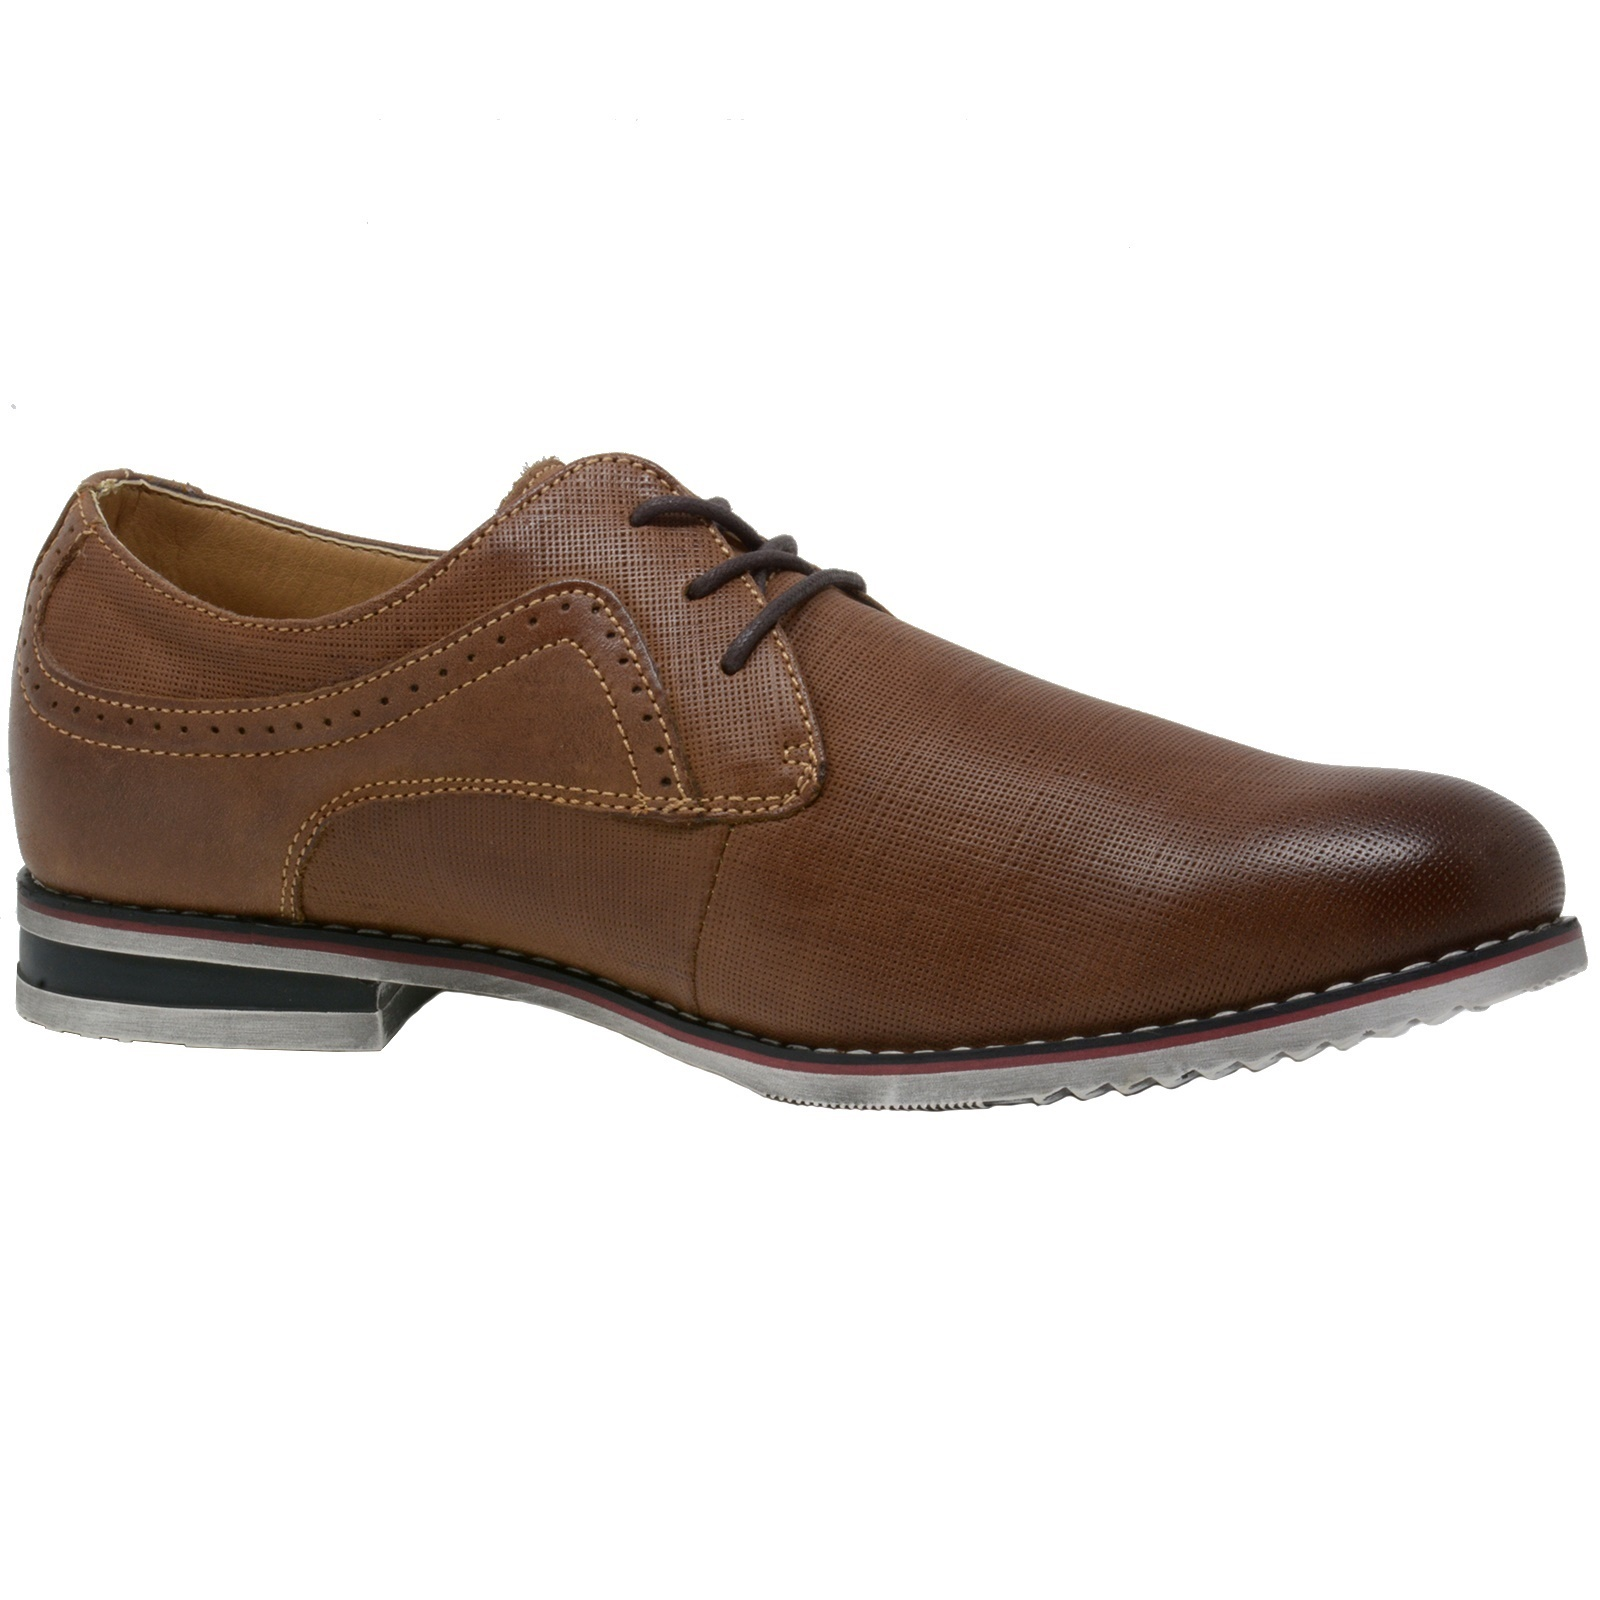 Double-Diamond-by-Alpine-Swiss-Mens-Saffiano-Leather-Lace-Up-Oxford-Dress-Shoes thumbnail 20